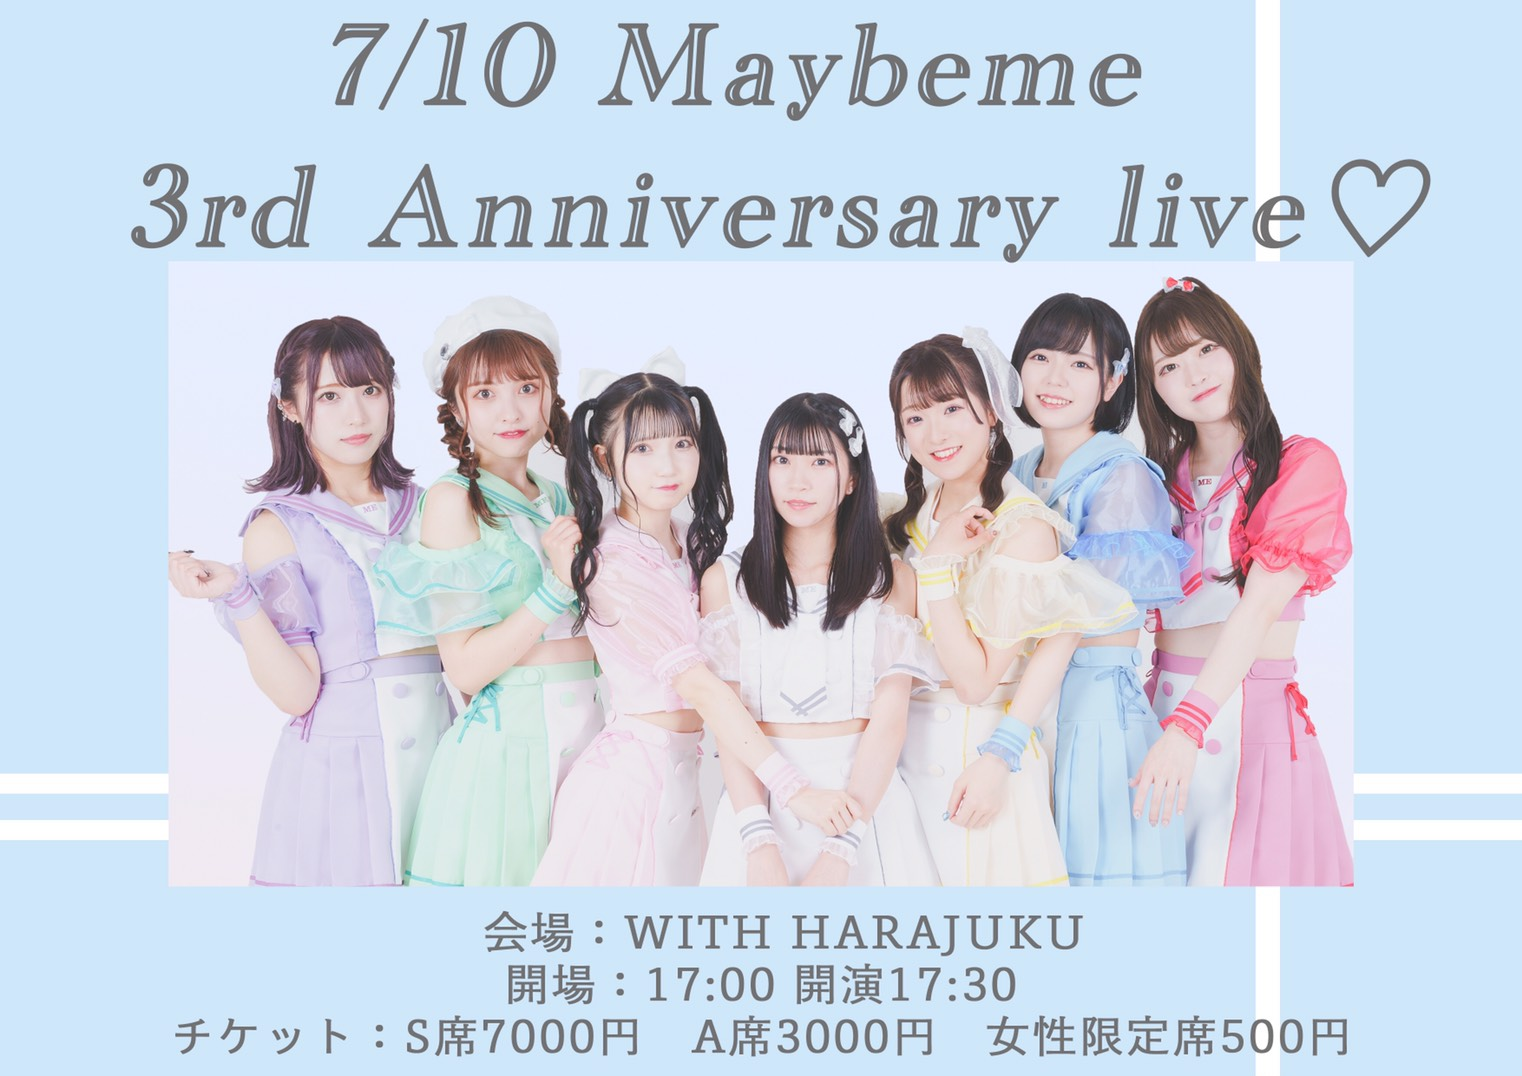 7/10 Maybeme 3rd Anniversary live♡